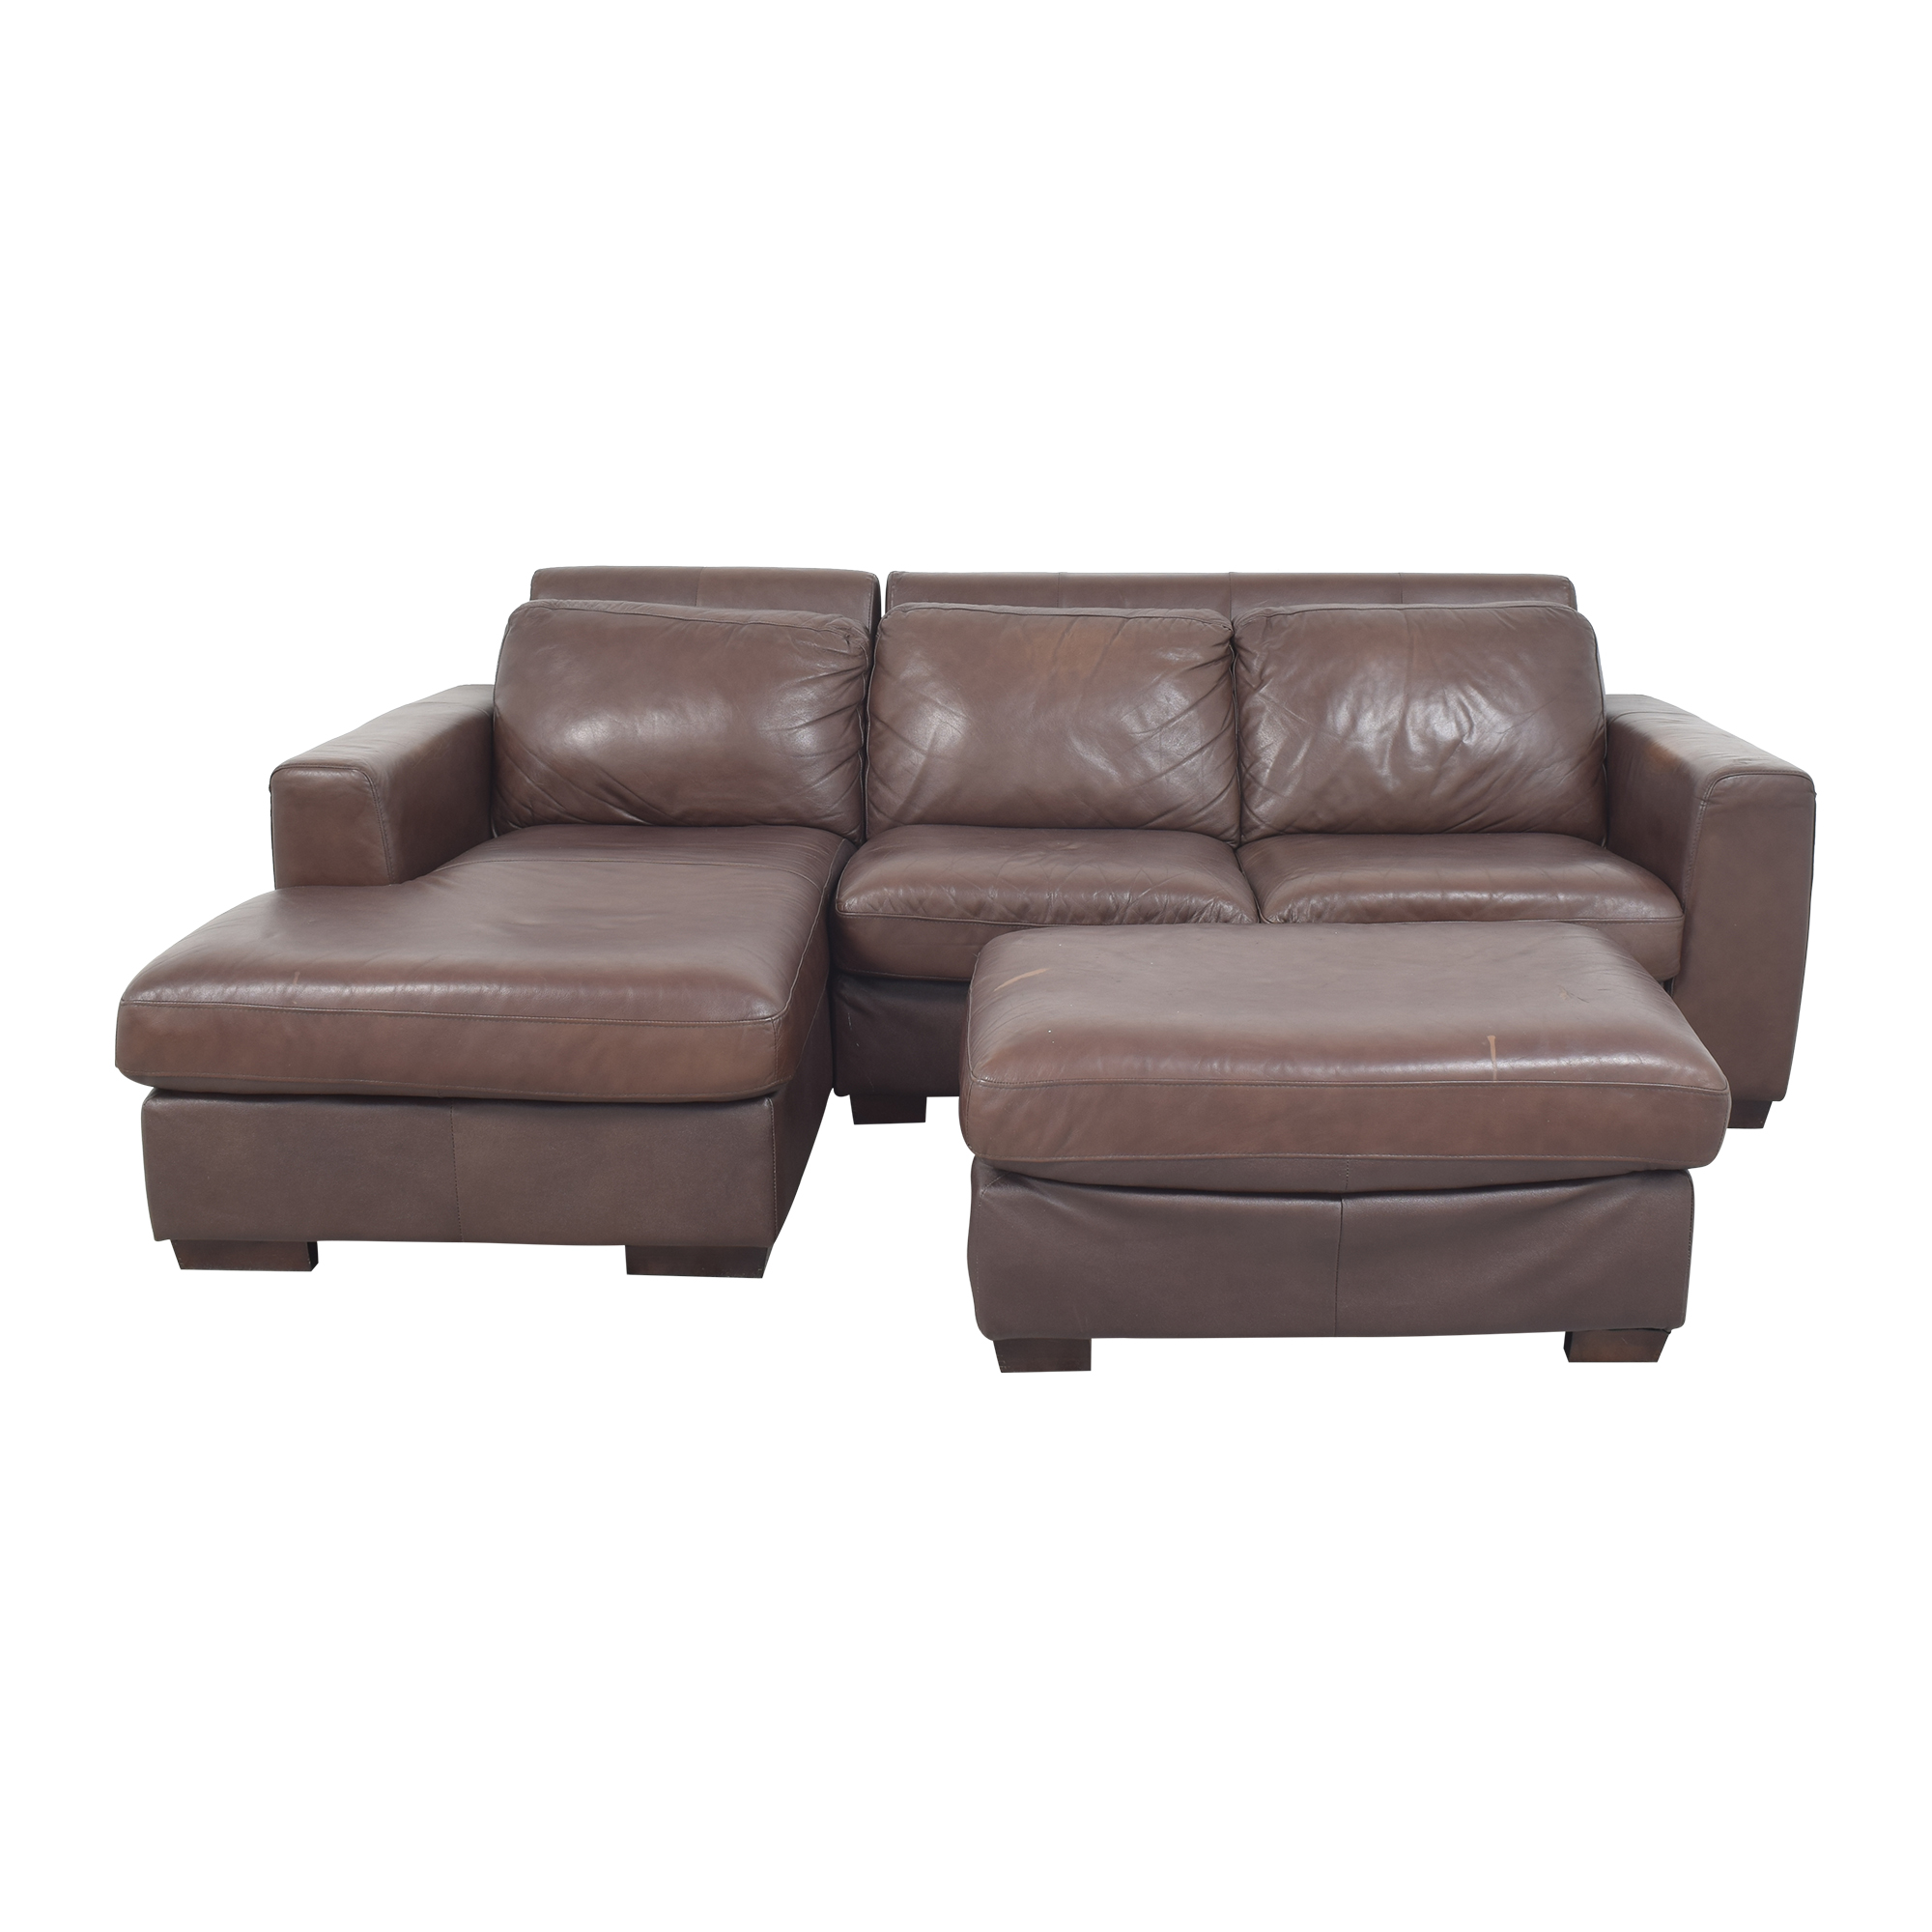 Costco Costco Layla Sectional Sofa with Ottoman ct